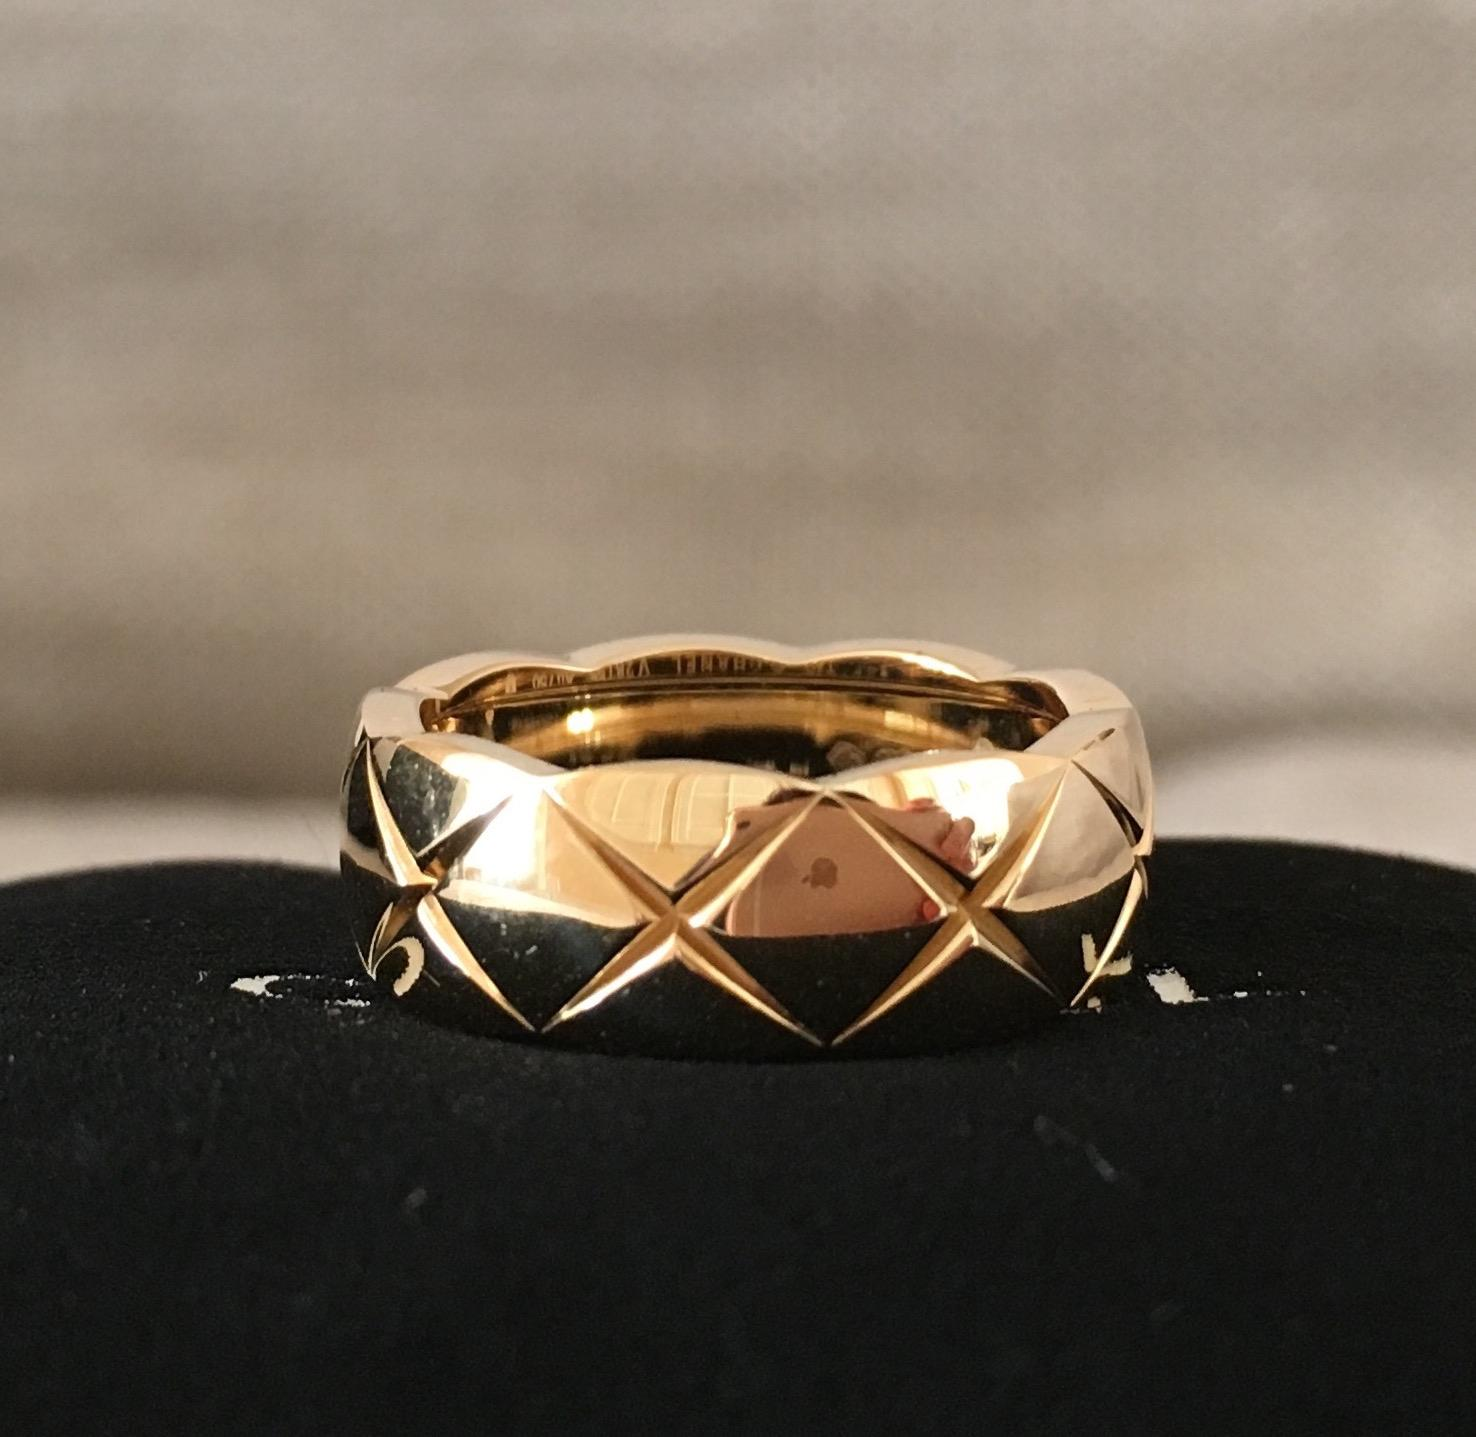 Chanel Coco Crush 18K Yellow Gold Small Ring Size 49